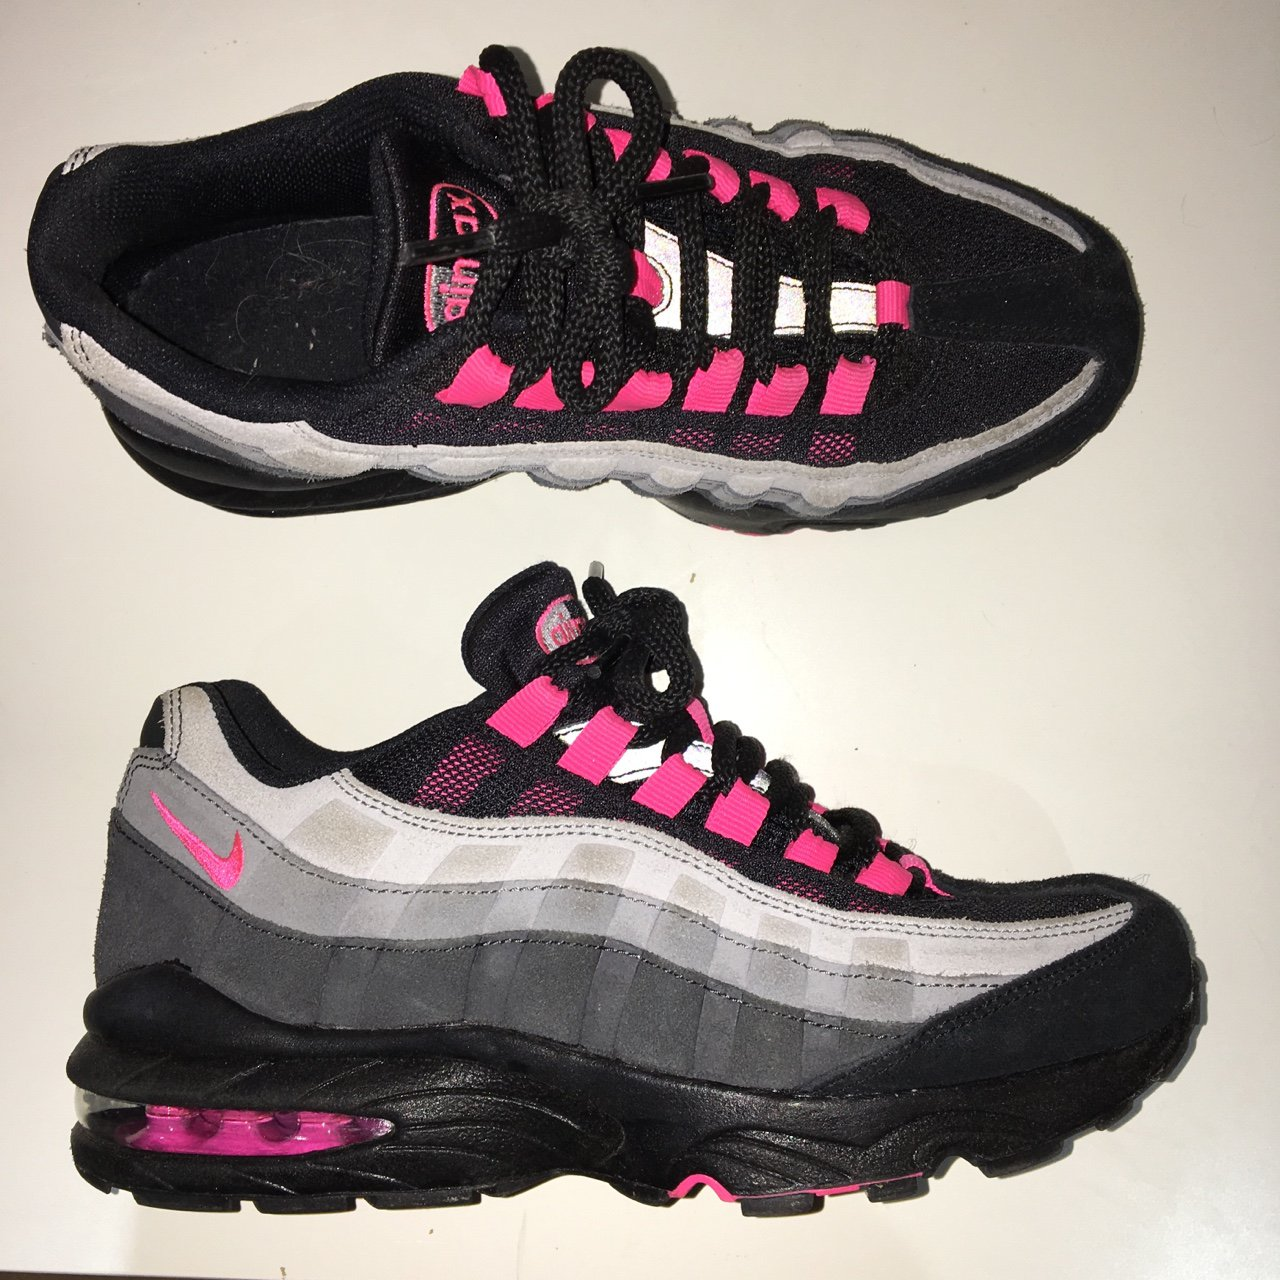 99141cd7ea @svphiescott. 2 years ago. Warlingham, United Kingdom. Nike Air Max 95  Junior in Pink, Black ...